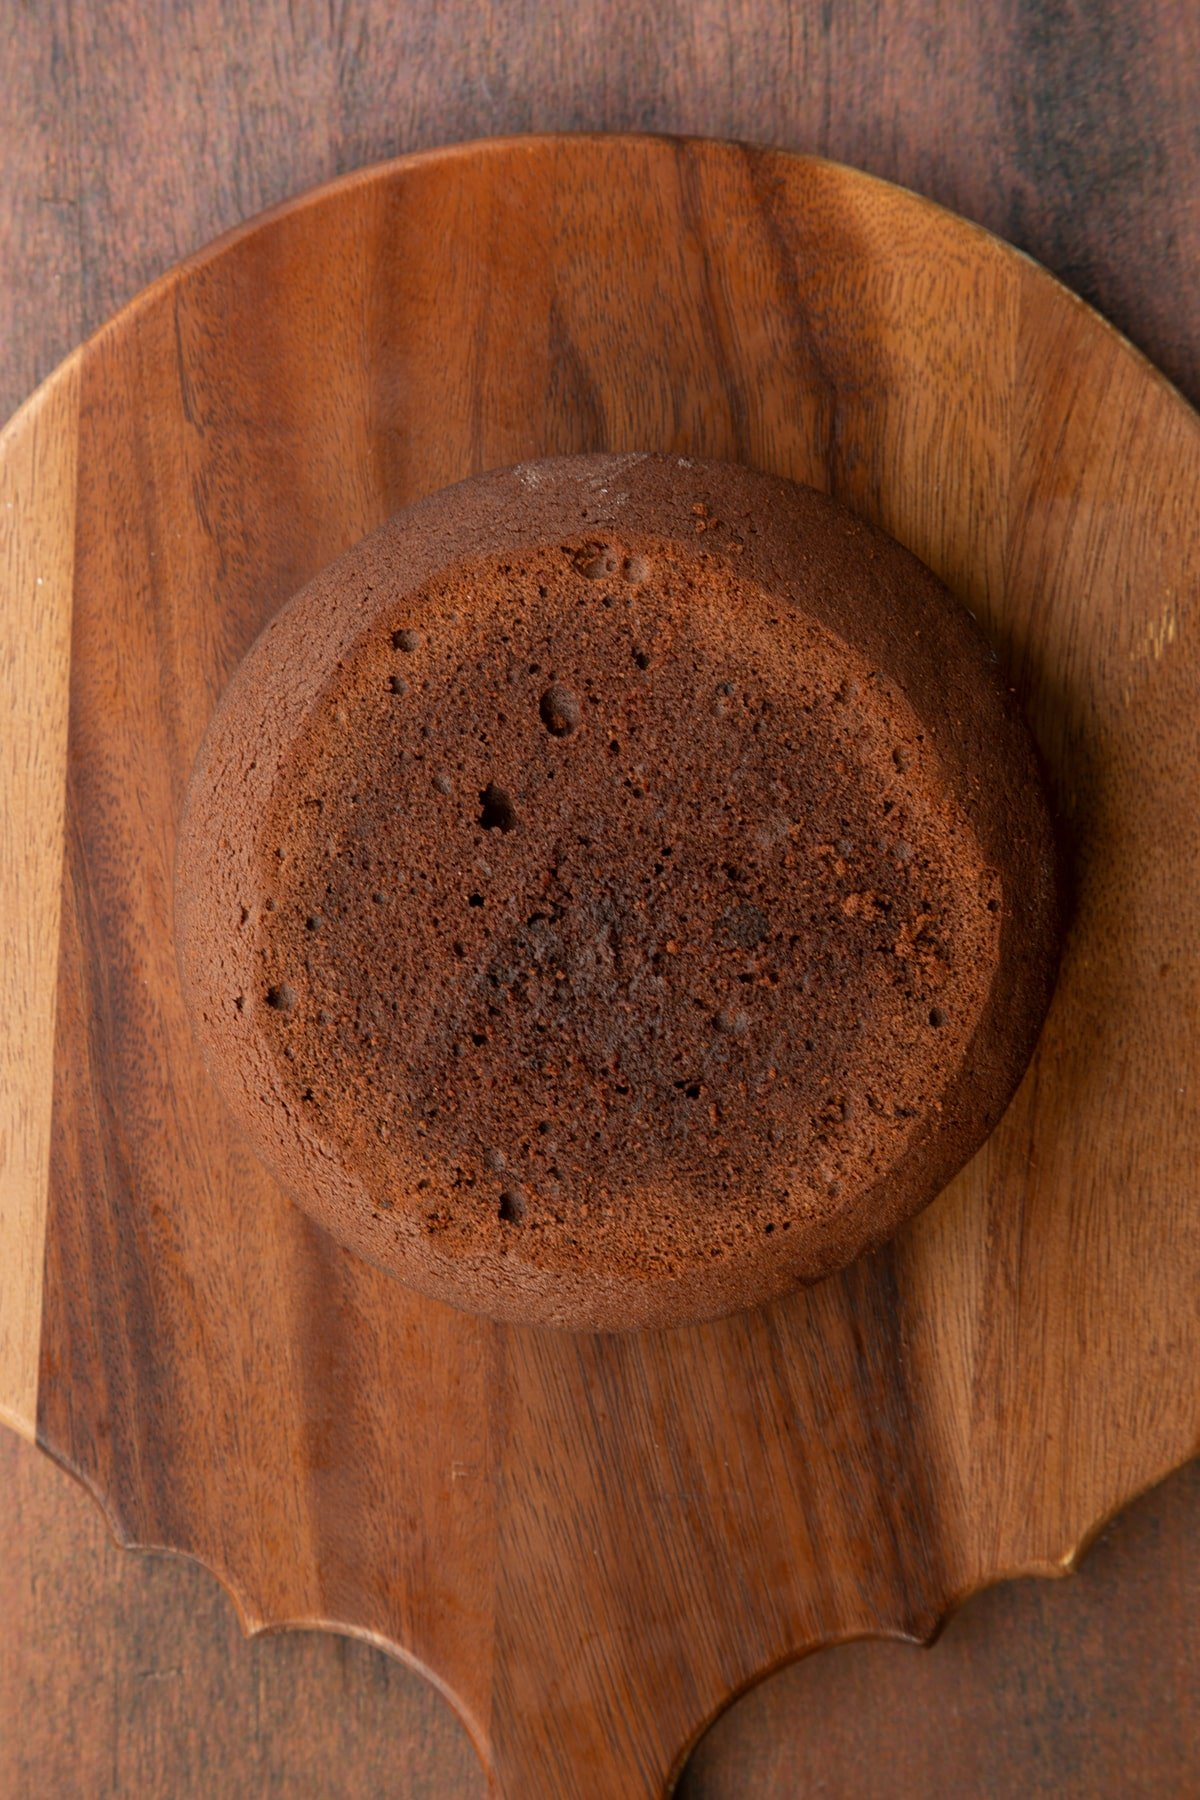 A layer of Baileys chocolate cake on a wooden board.